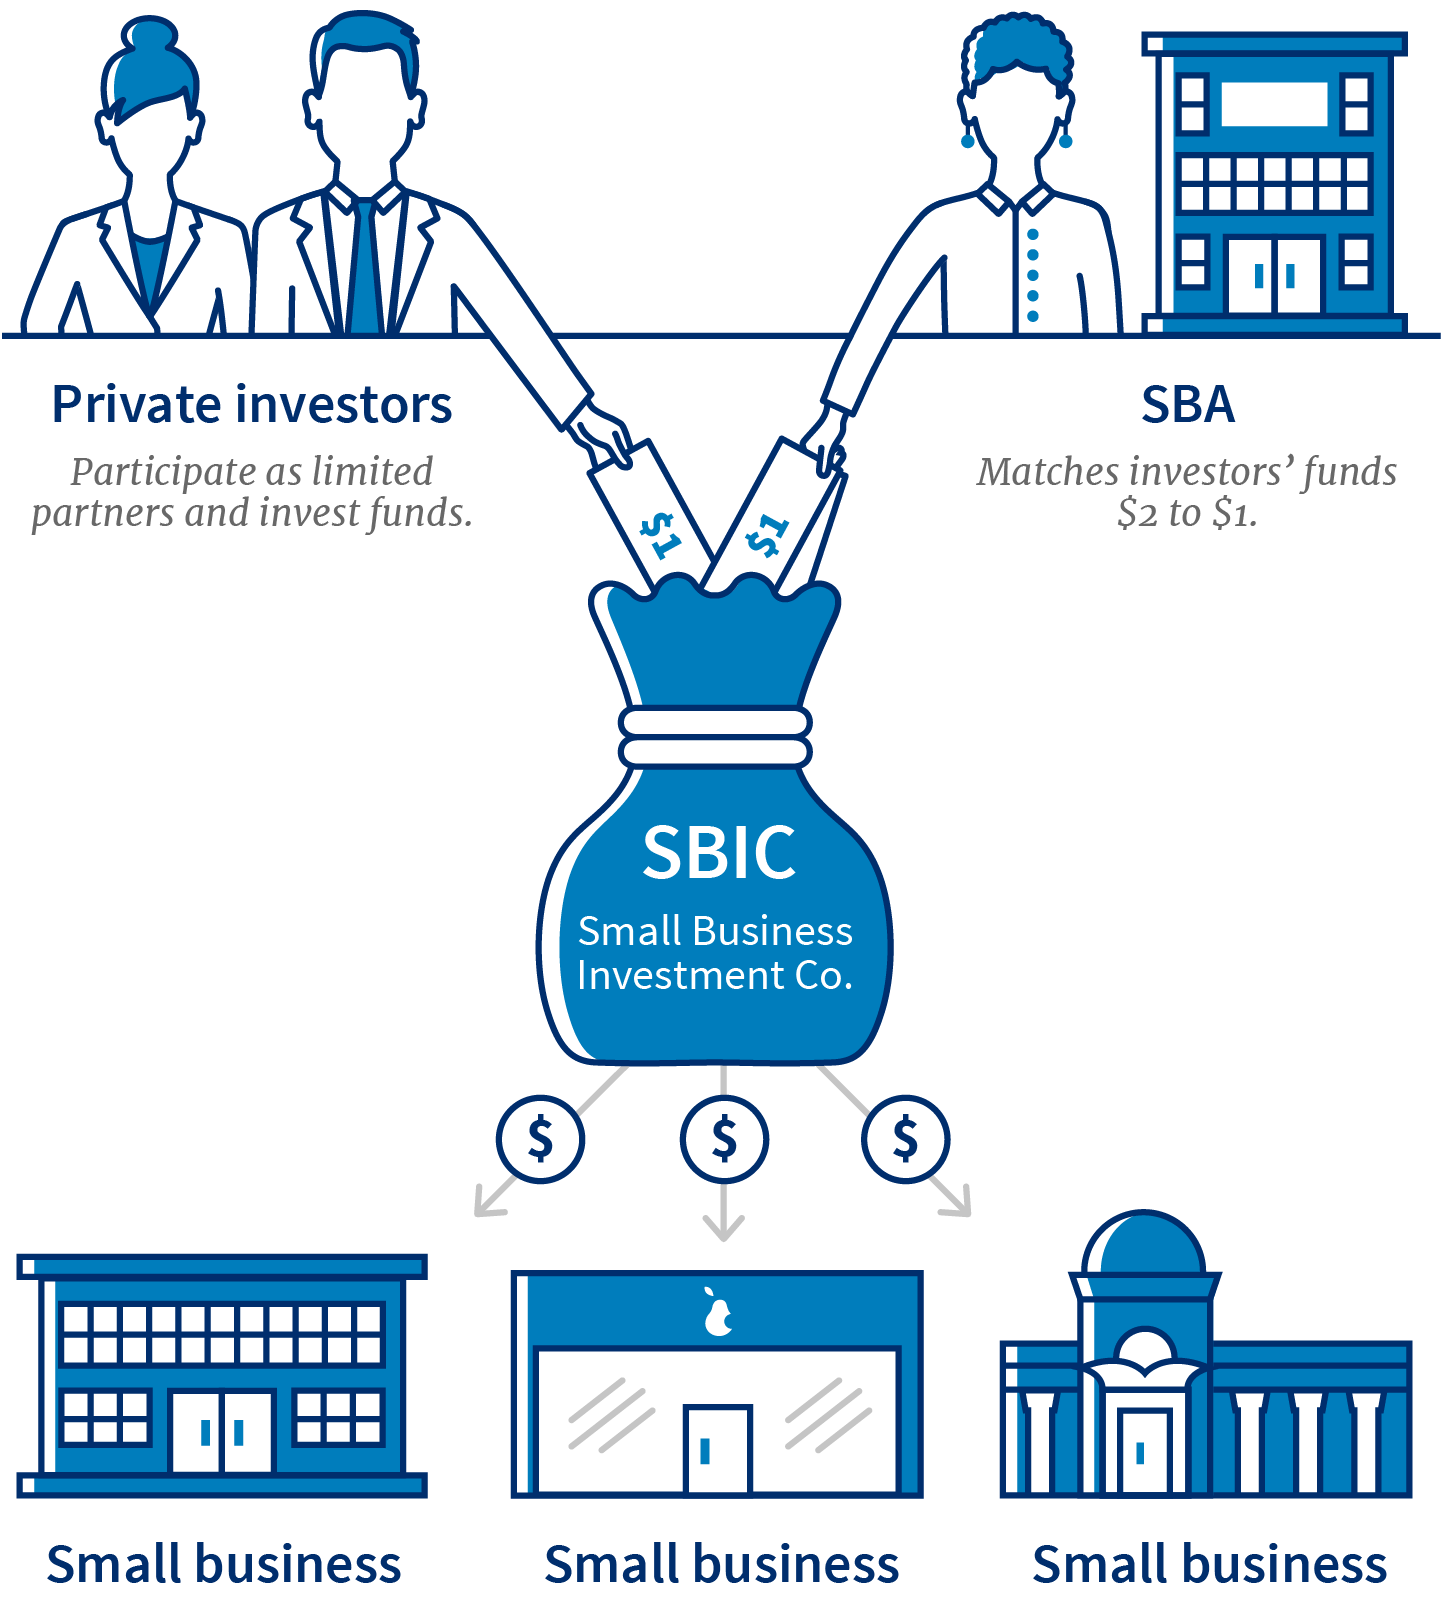 An infographic showing how private investors contribute funds to a Small Business Investment Company. The SBA matches funds $2 to $1, and the SBIC then distributes funds to small businesses in the form of investments.